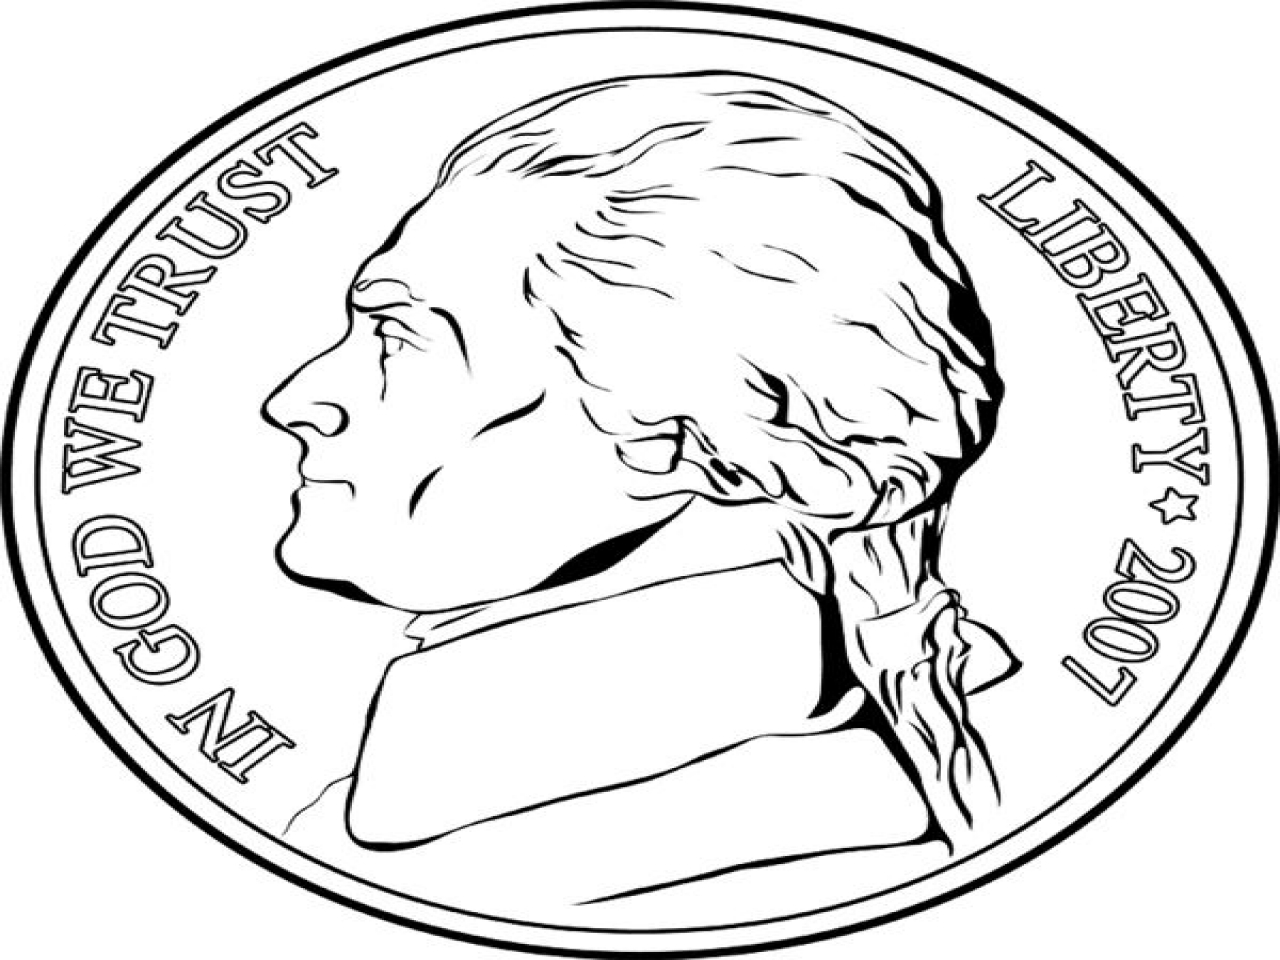 penny nickle coloring pages - photo#18